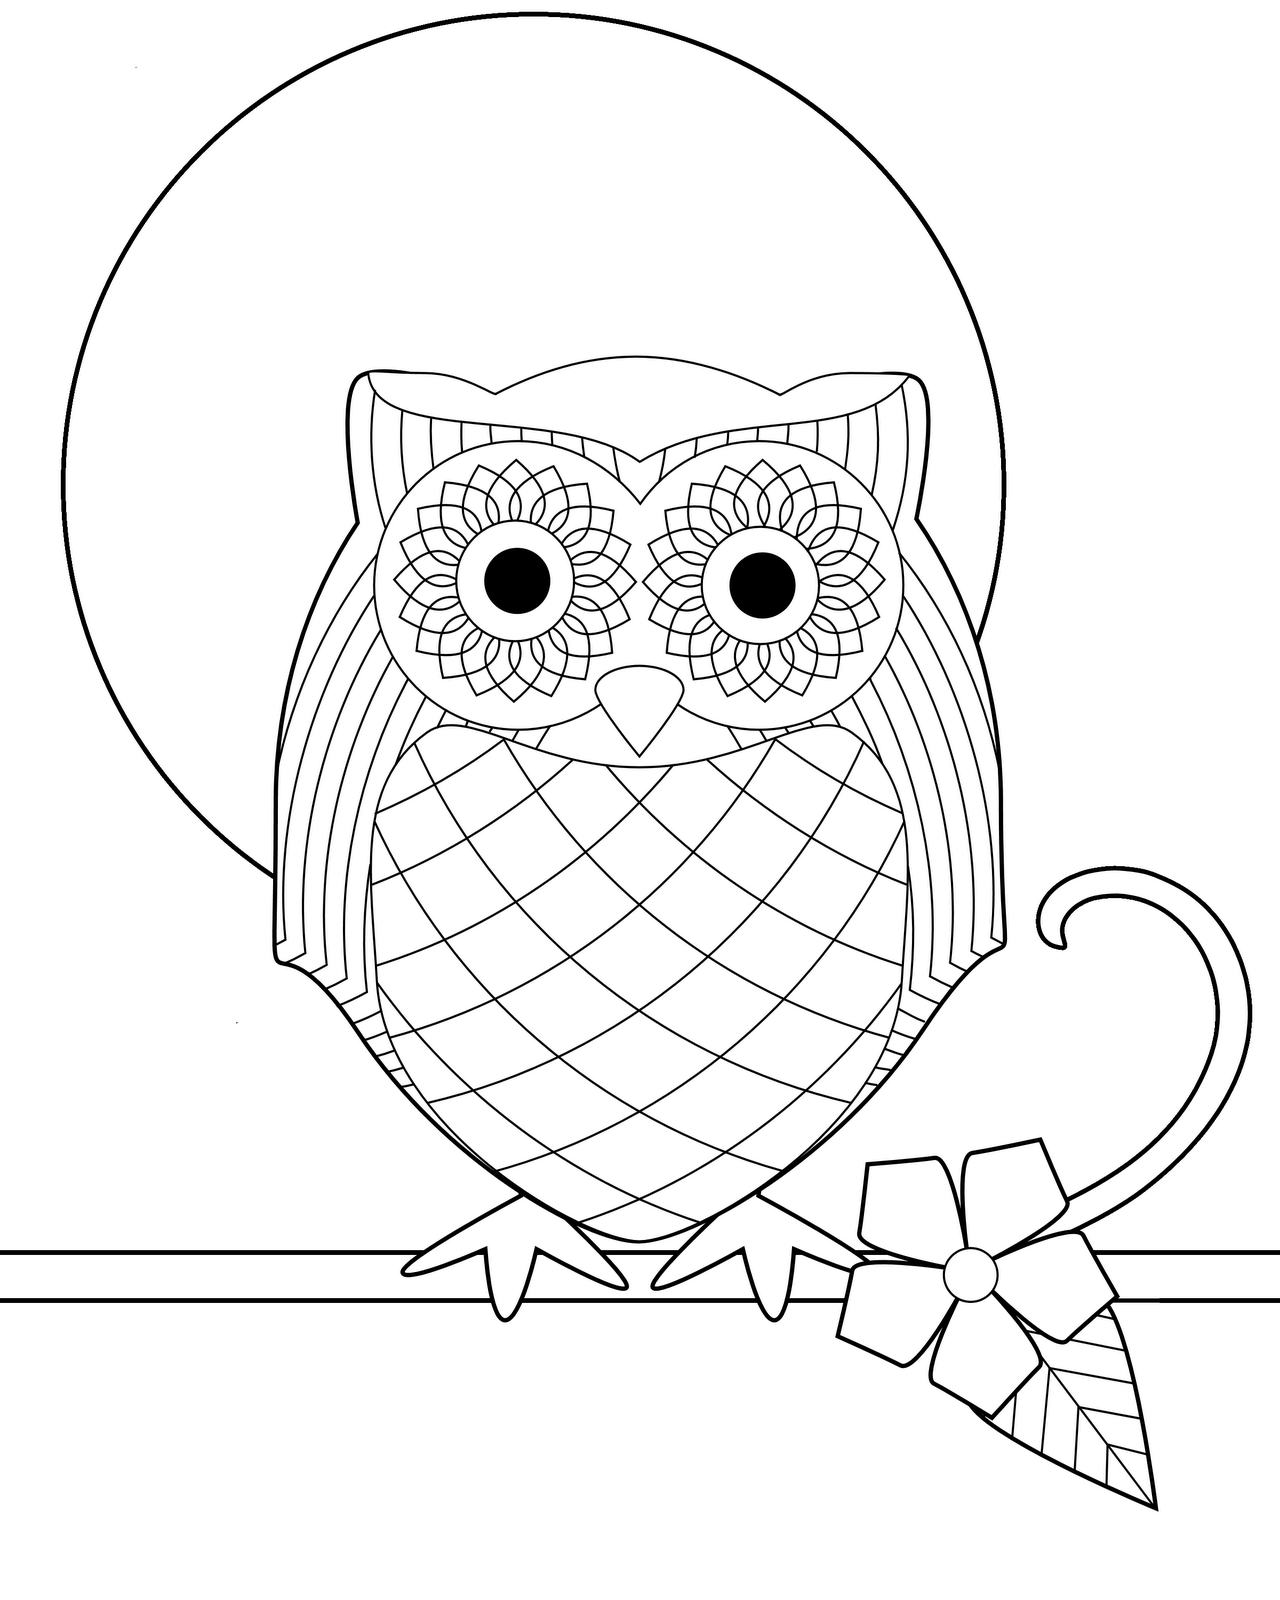 In Owl Coloring Book Pages